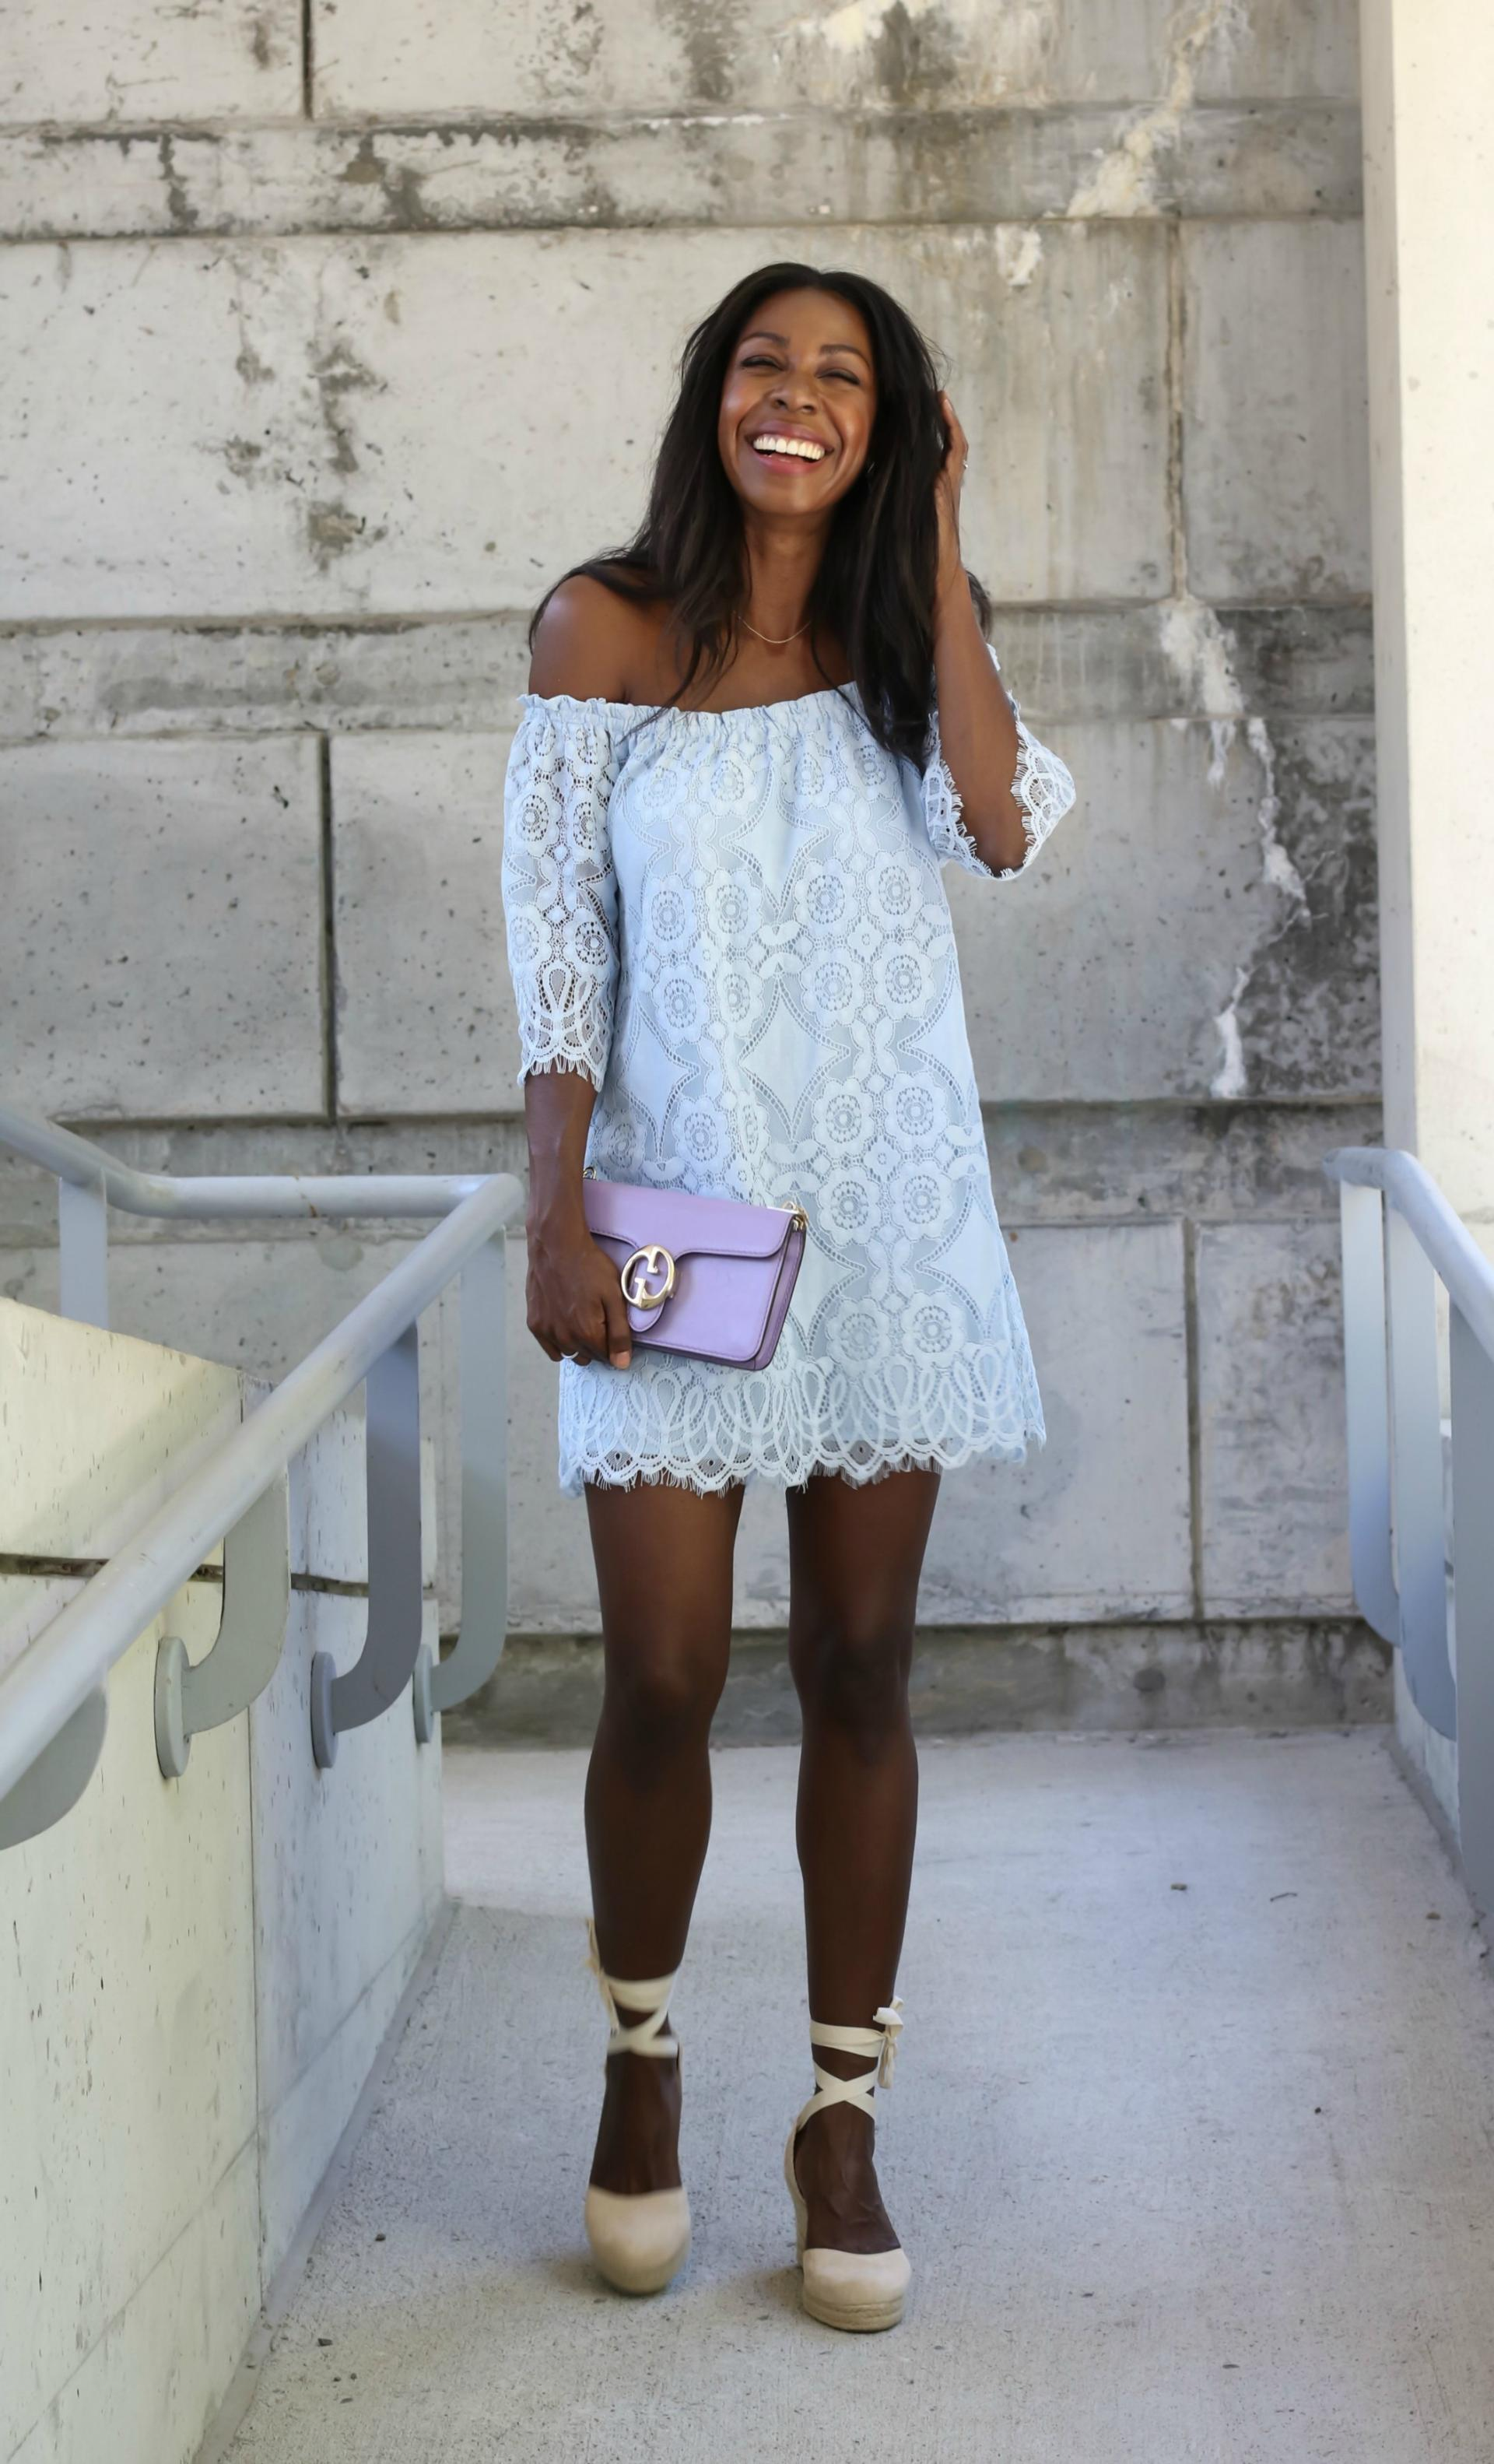 Having a blue lace moment in the most perfect blue lace off-the-shoulder dress